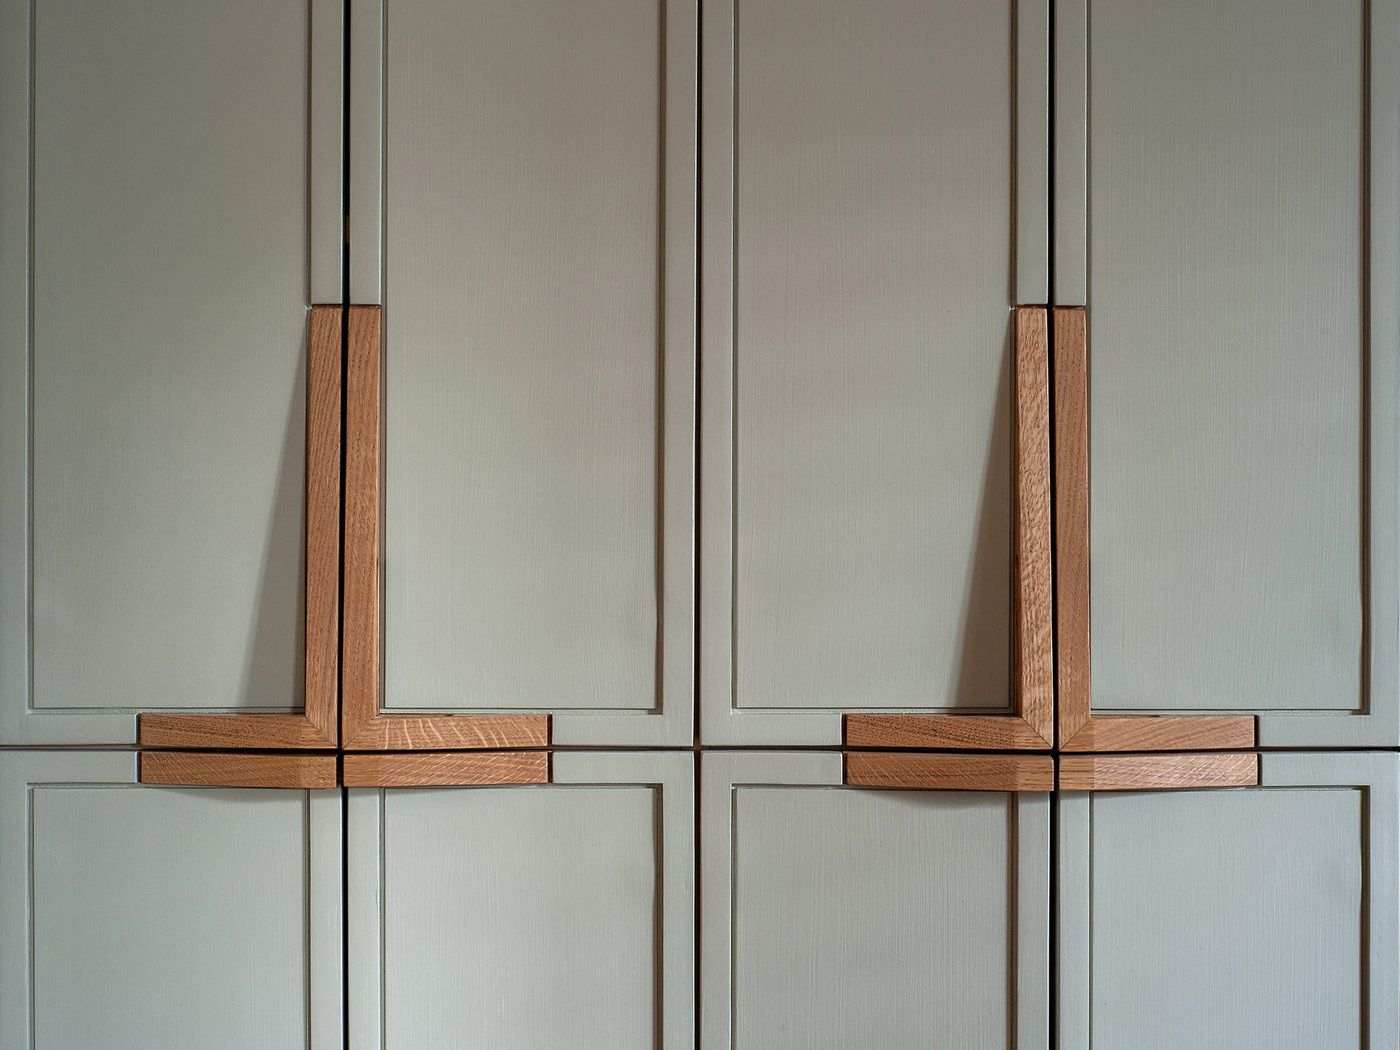 Pin by Mal Moorman on Marcenaria | Wooden cabinet pulls ...